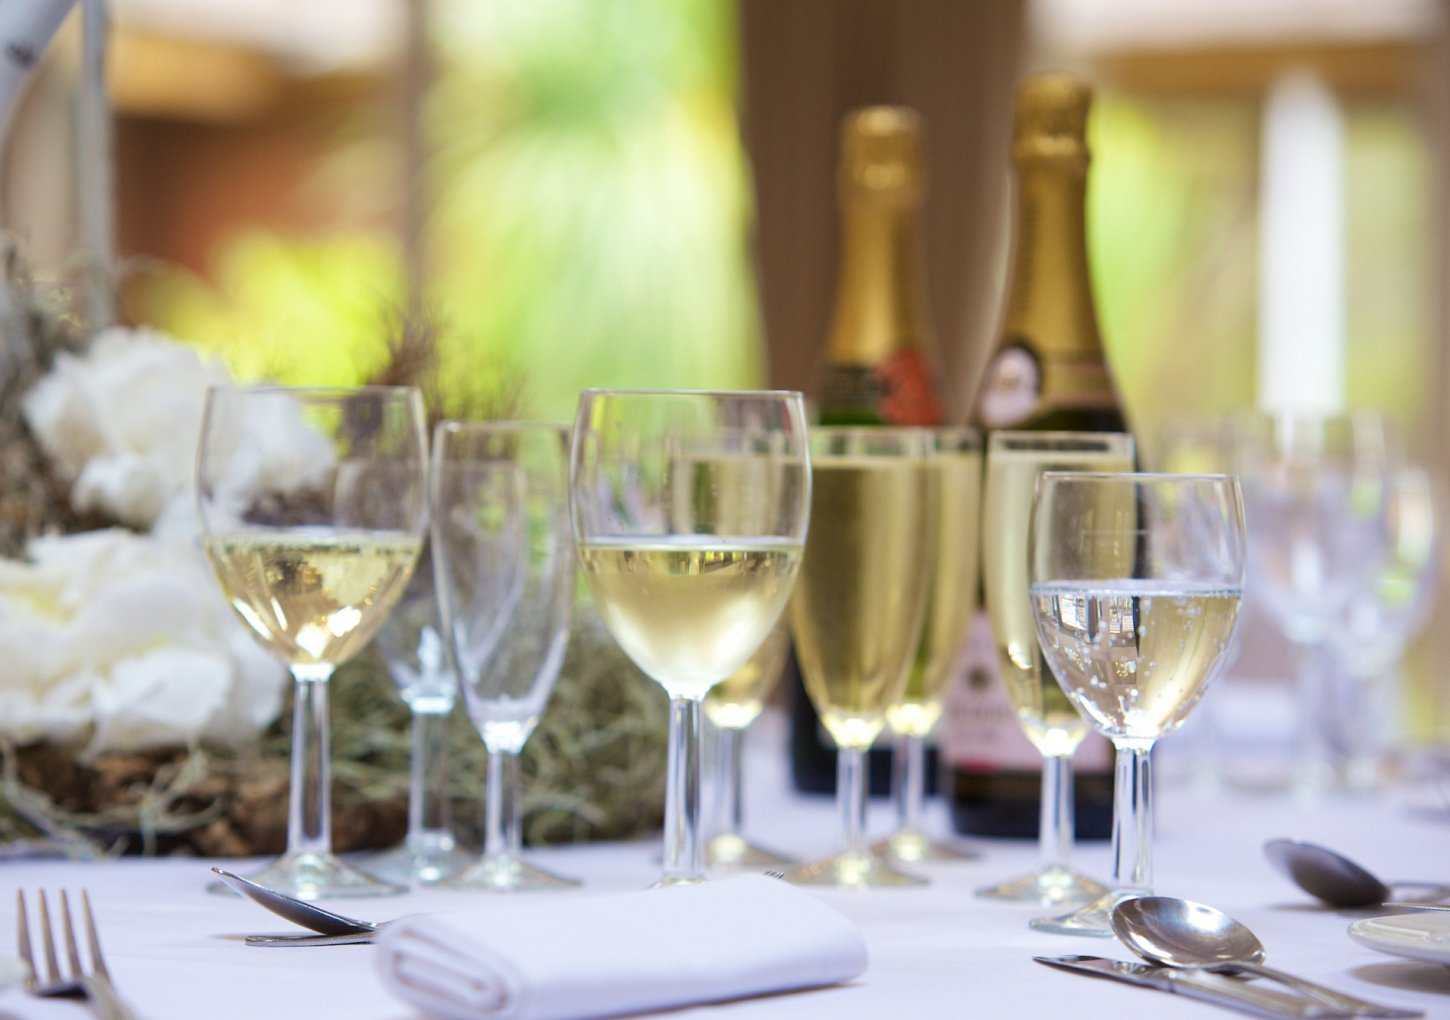 New Years Eve Hotel Packages For Families Uk